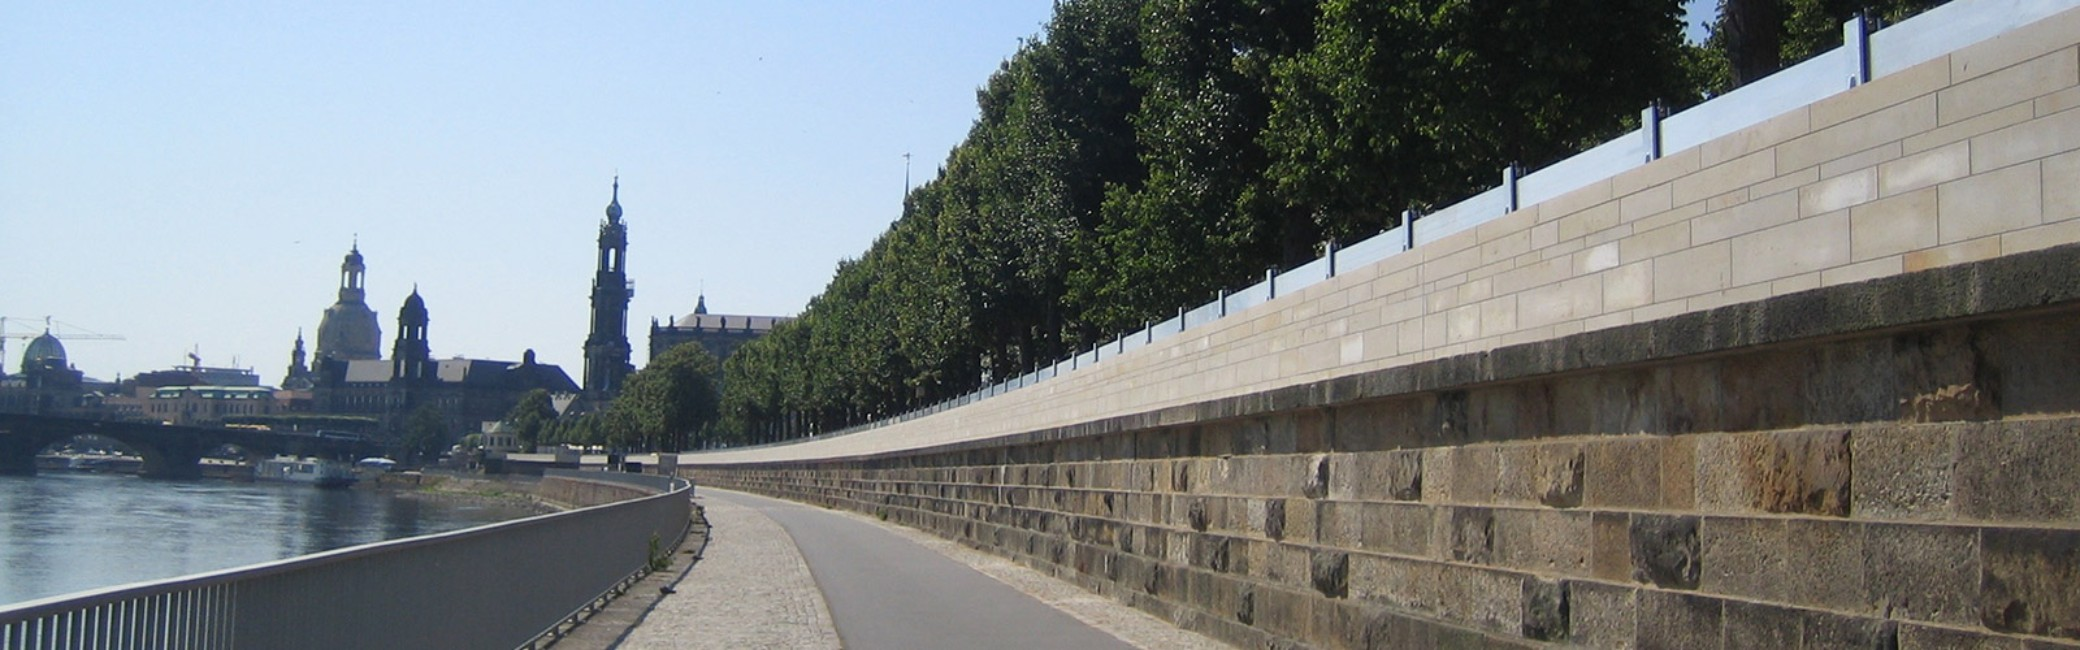 Dresden: protecting the historic heart of the city